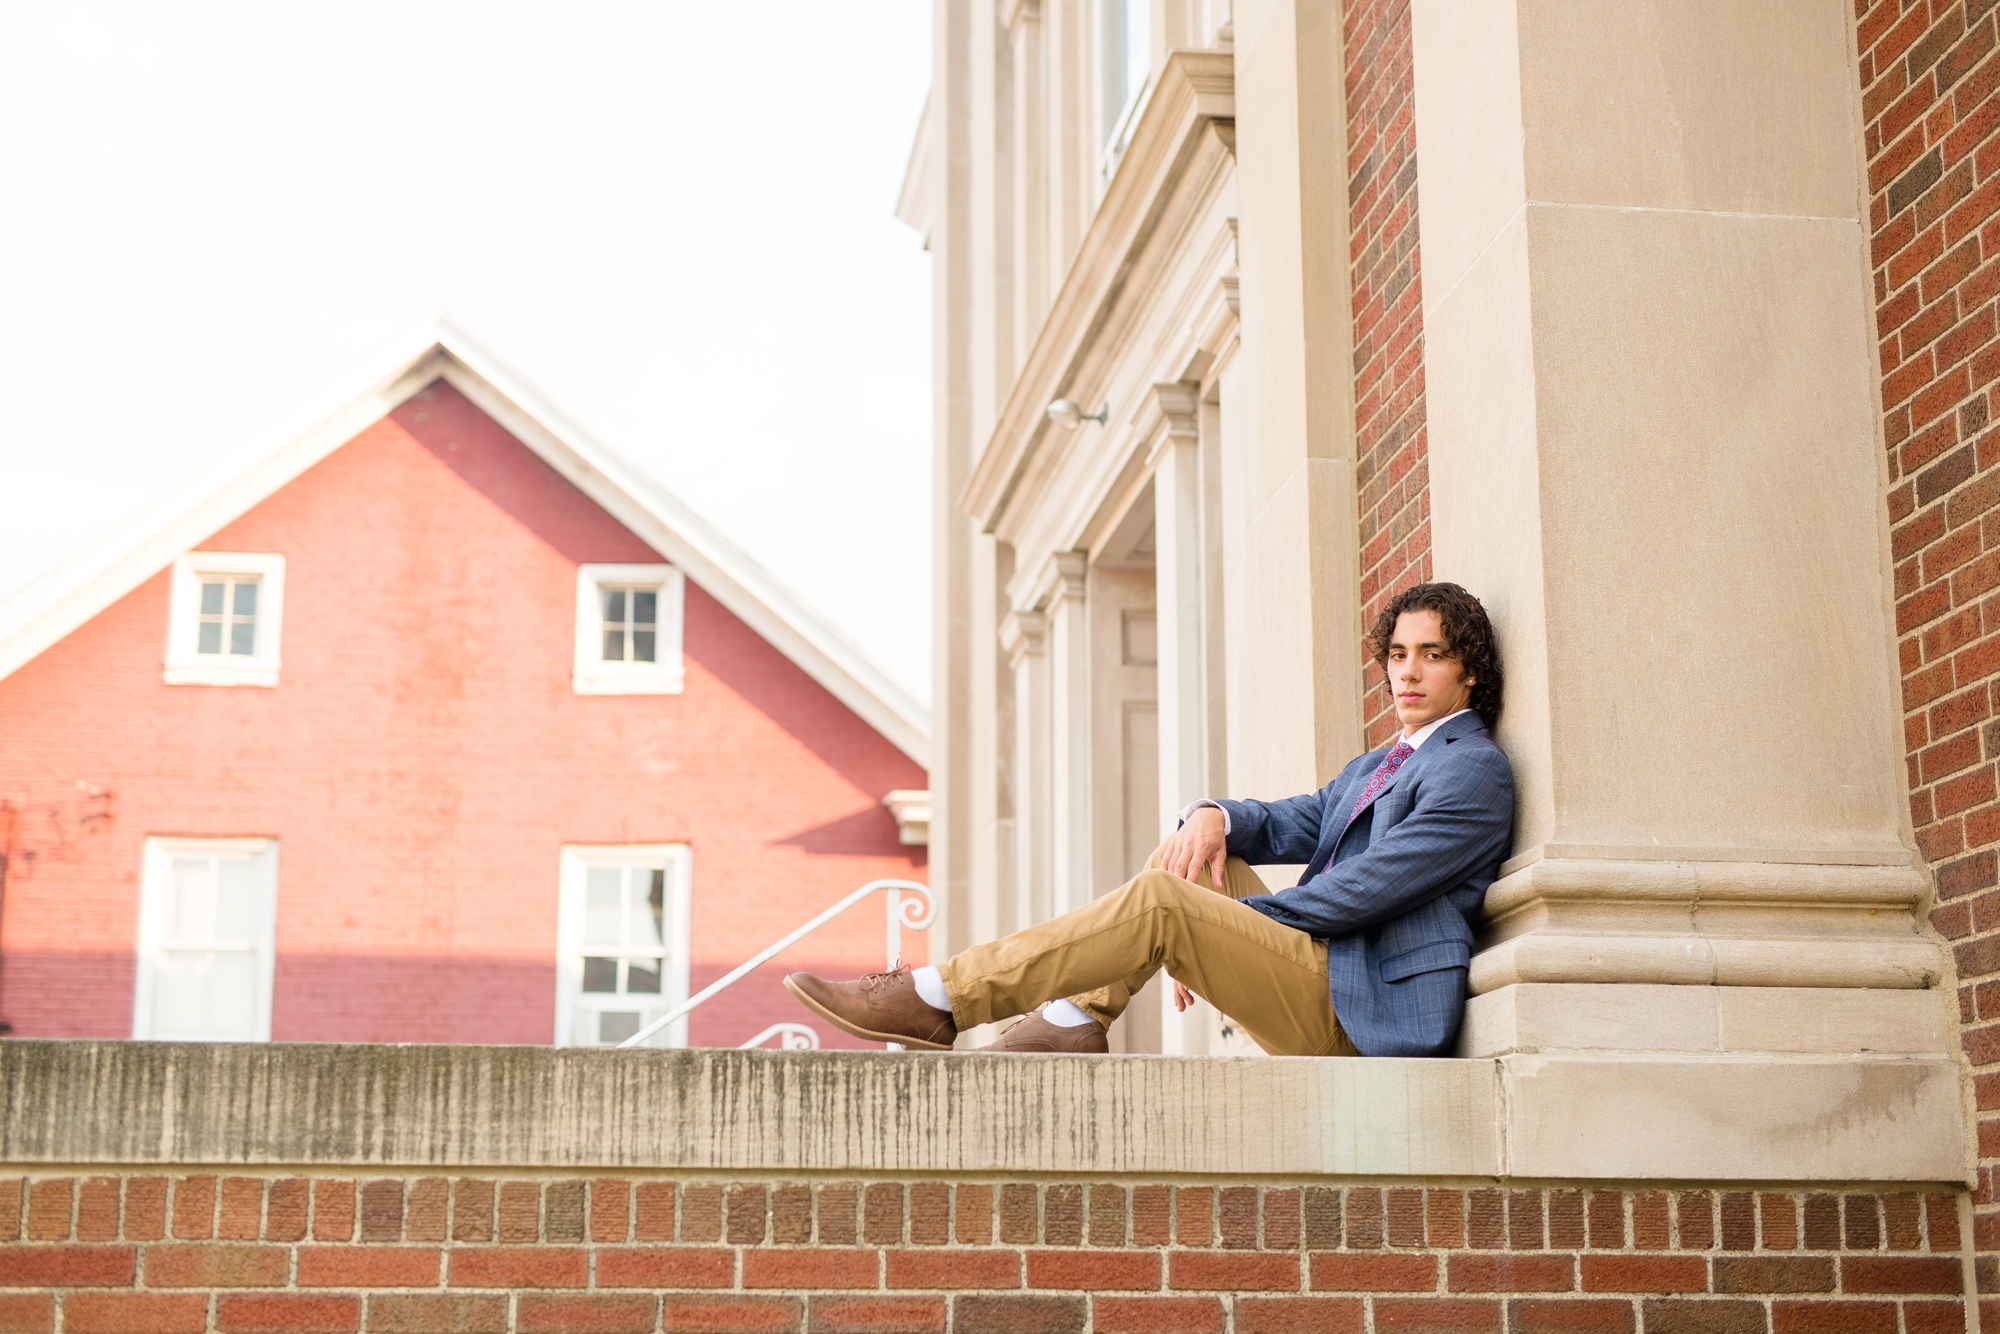 historic harmony senior photos, best places for senior photos in pittsburgh, best locations for senior photos in pittsburgh, pittsburgh senior photographer, cranberry township senior photographer